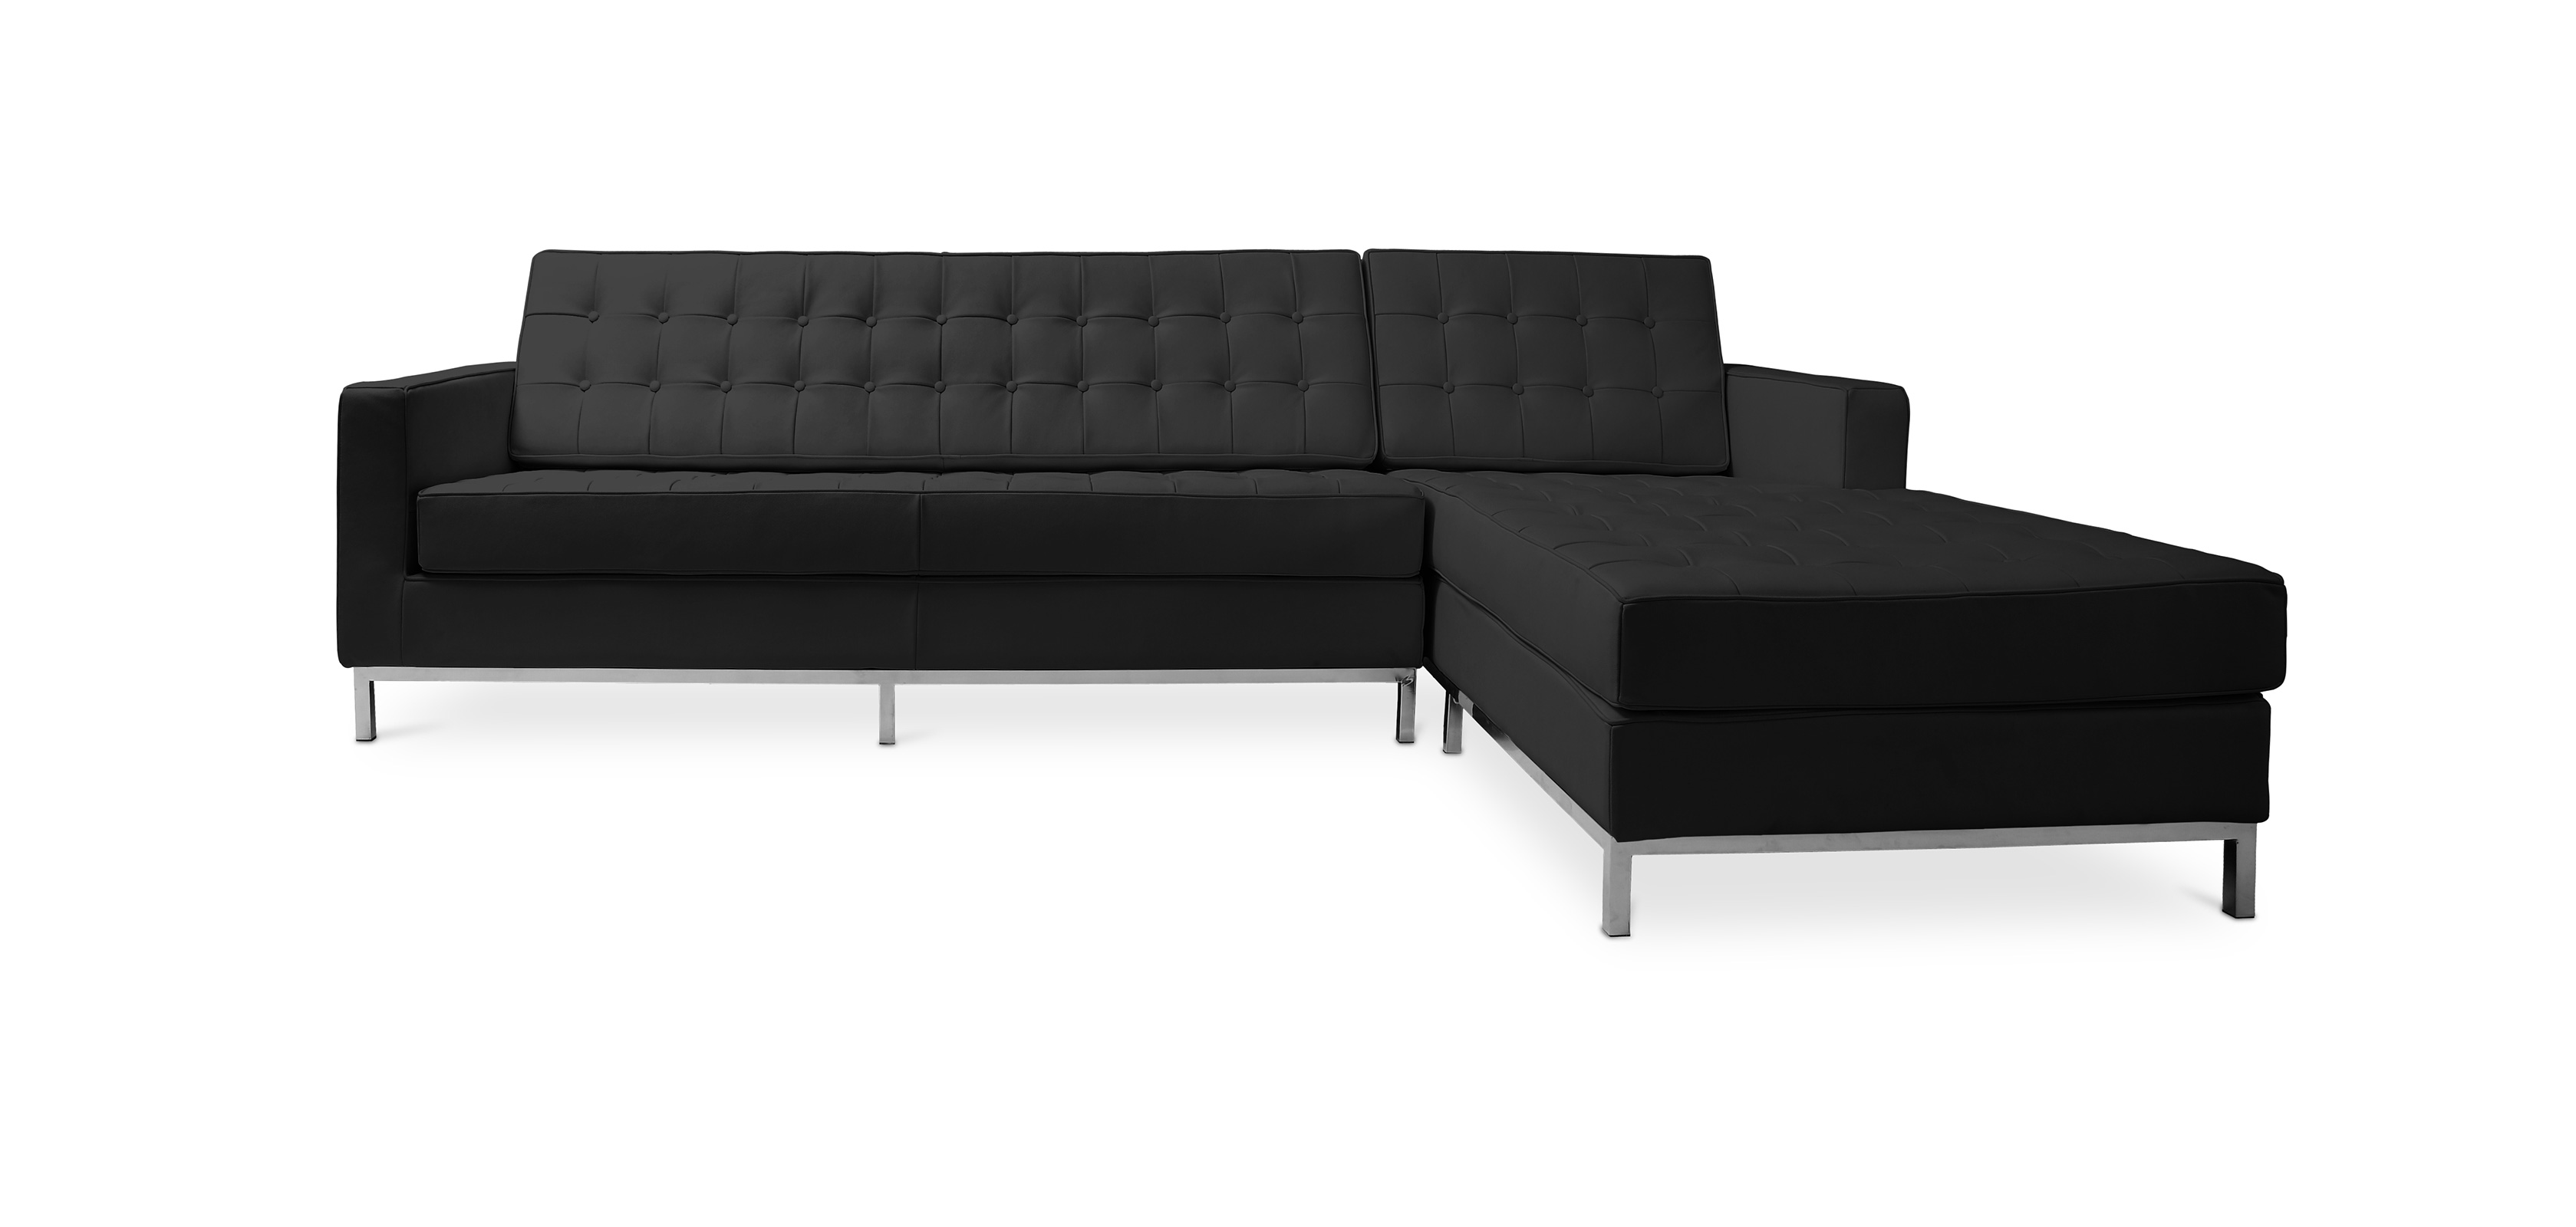 ecksofa florence knoll rechter winkel leder. Black Bedroom Furniture Sets. Home Design Ideas